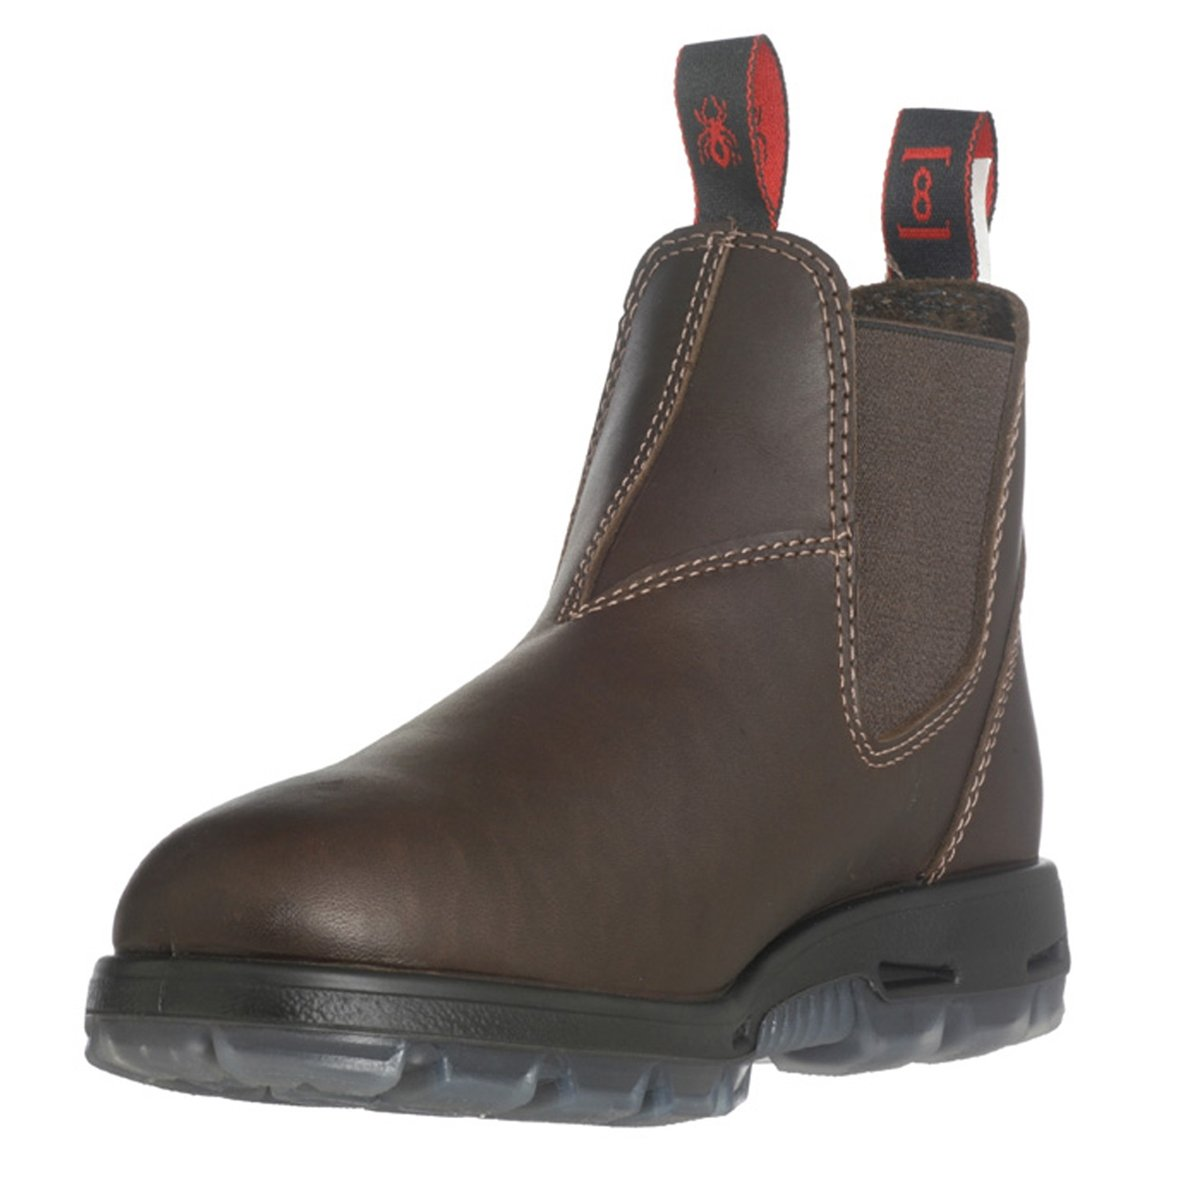 RedbacK Work Boots UNPU Great Barrier Water Resistant Puma Brown Leather US 9 (UK 8) by RedbacK